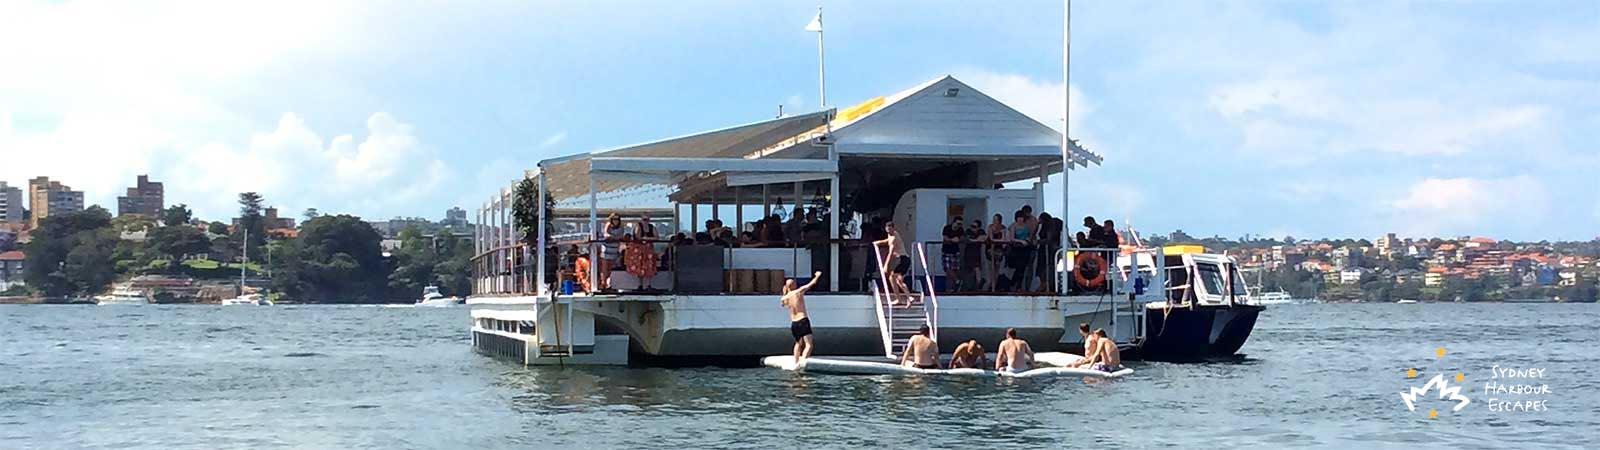 The Island boat - People enjoying